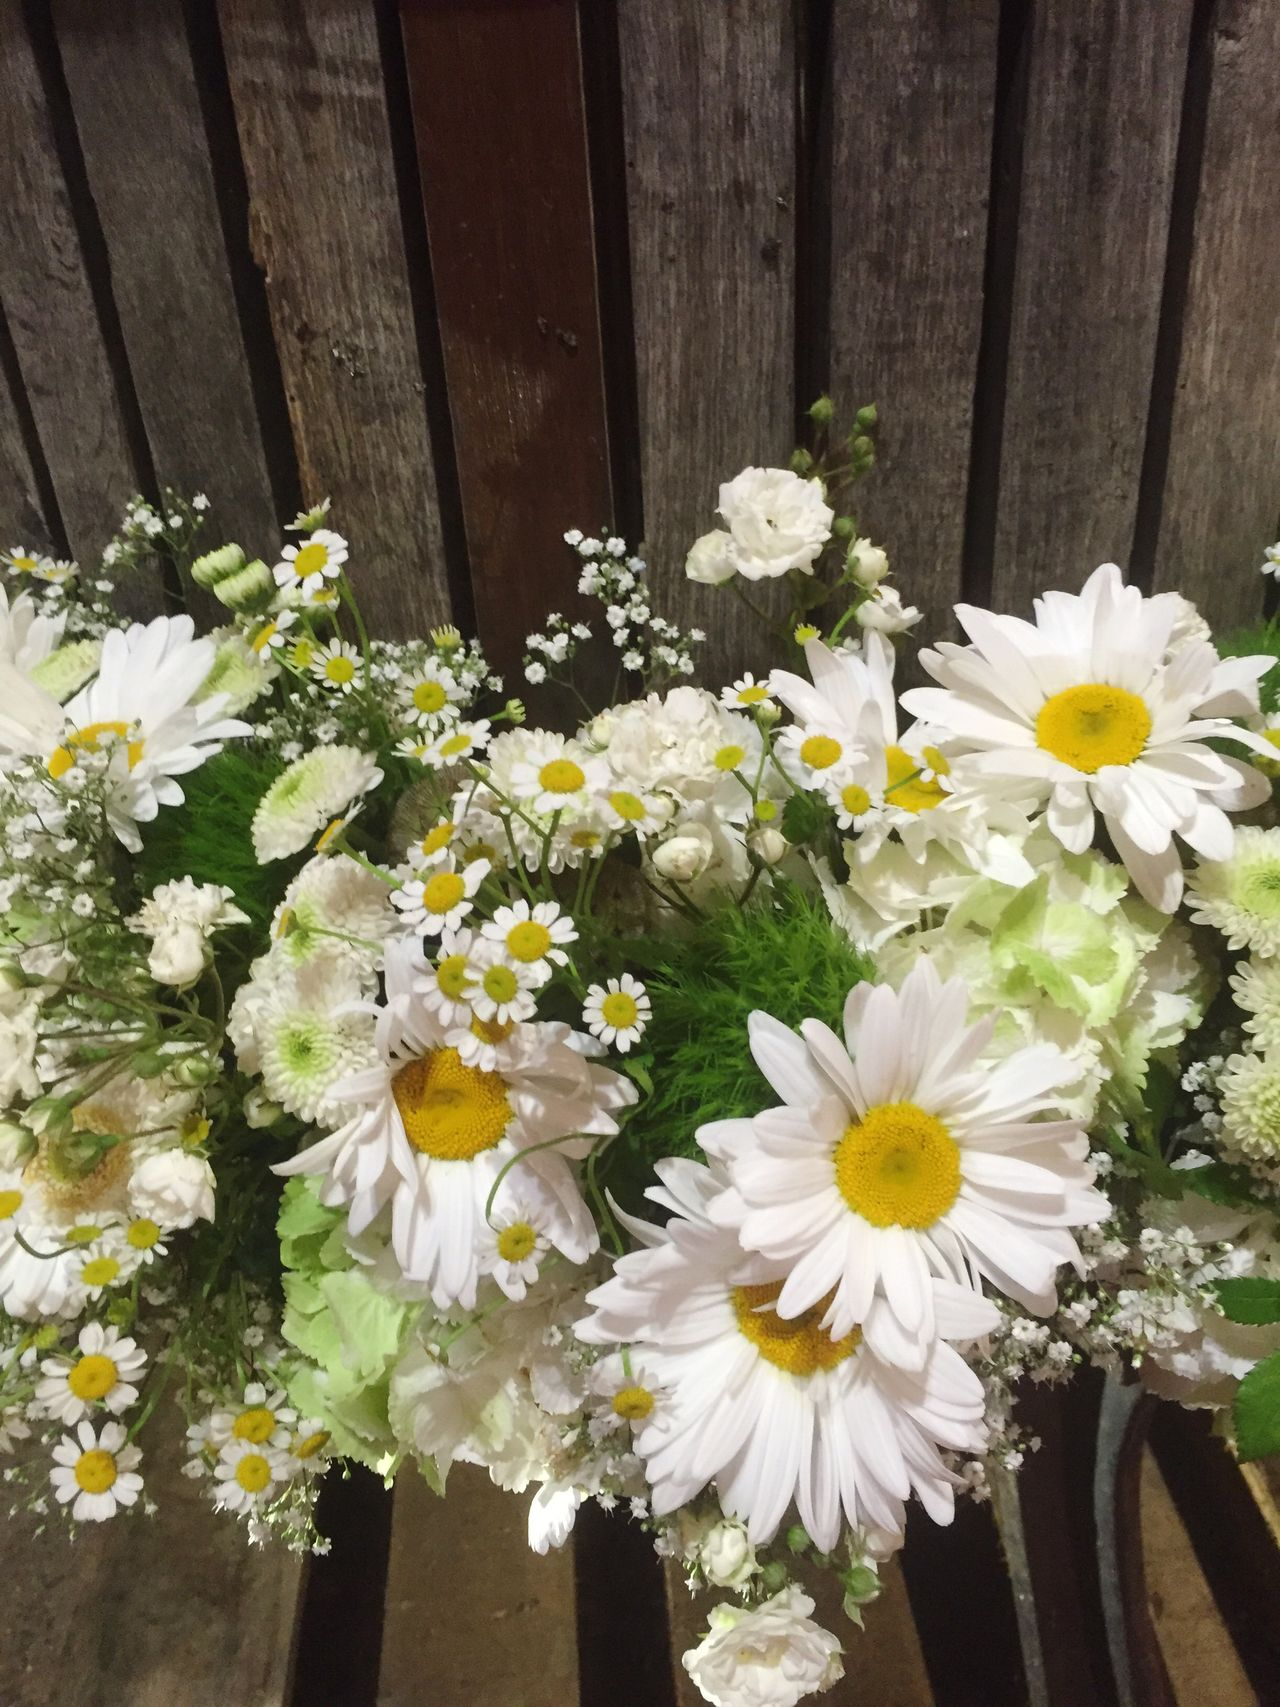 Flower decoration with daisies Flower Beautiful White Color Nature Delicate No People Fragility Outdoors Close-up Day Freshness Flower Arrangement Daisy Blooming Plant Valentine's Day  Bouquet Decoration Copy Space